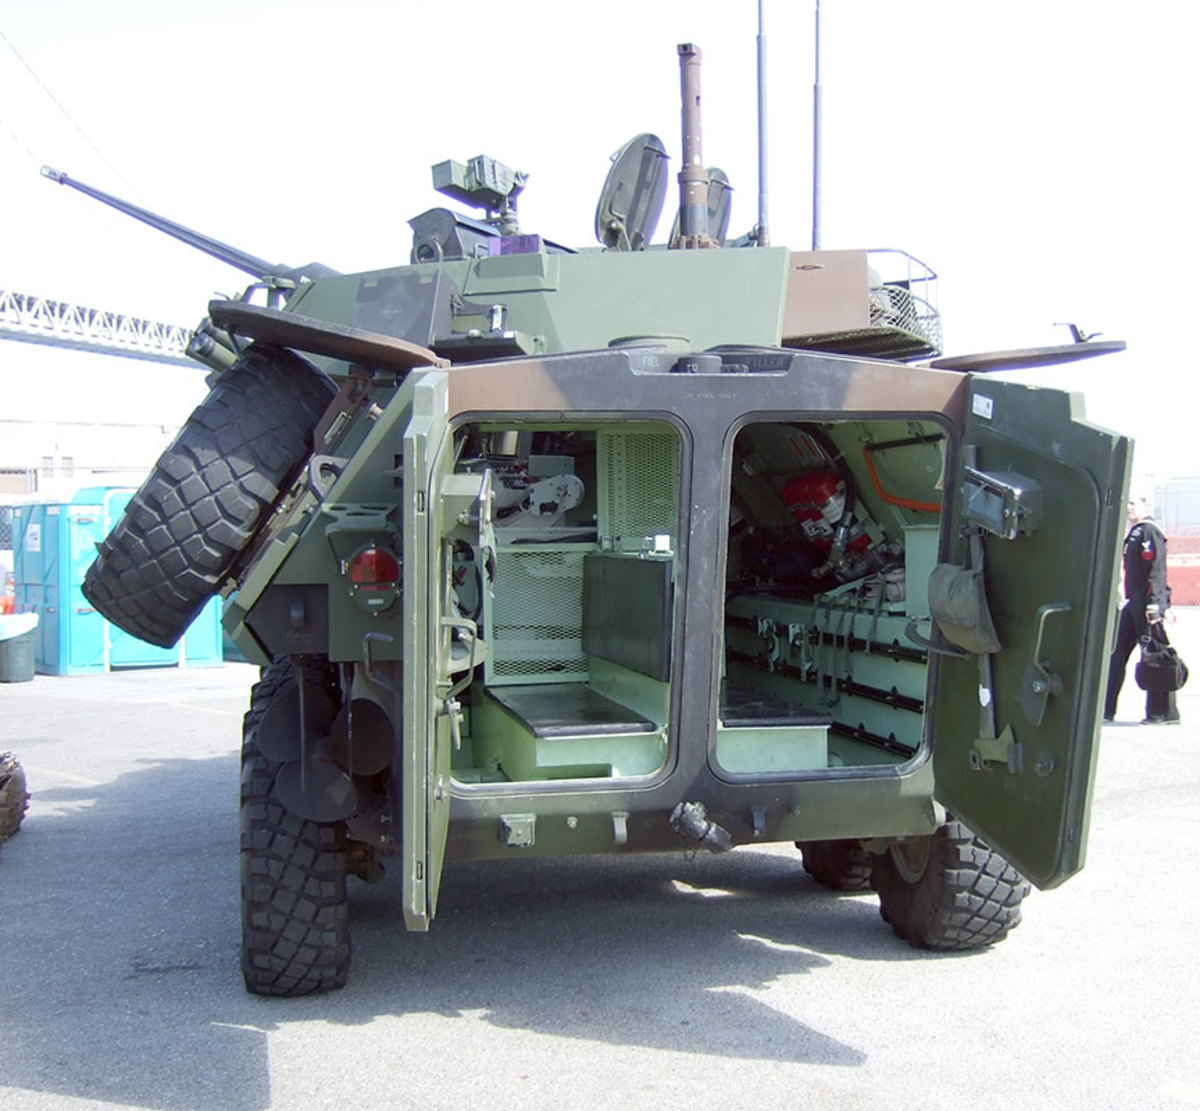 Rear view of the USMC LAVA2.  The LAV-25 has a crew of three and carries 2-4 Marine scouts in the rear passenger compartment.